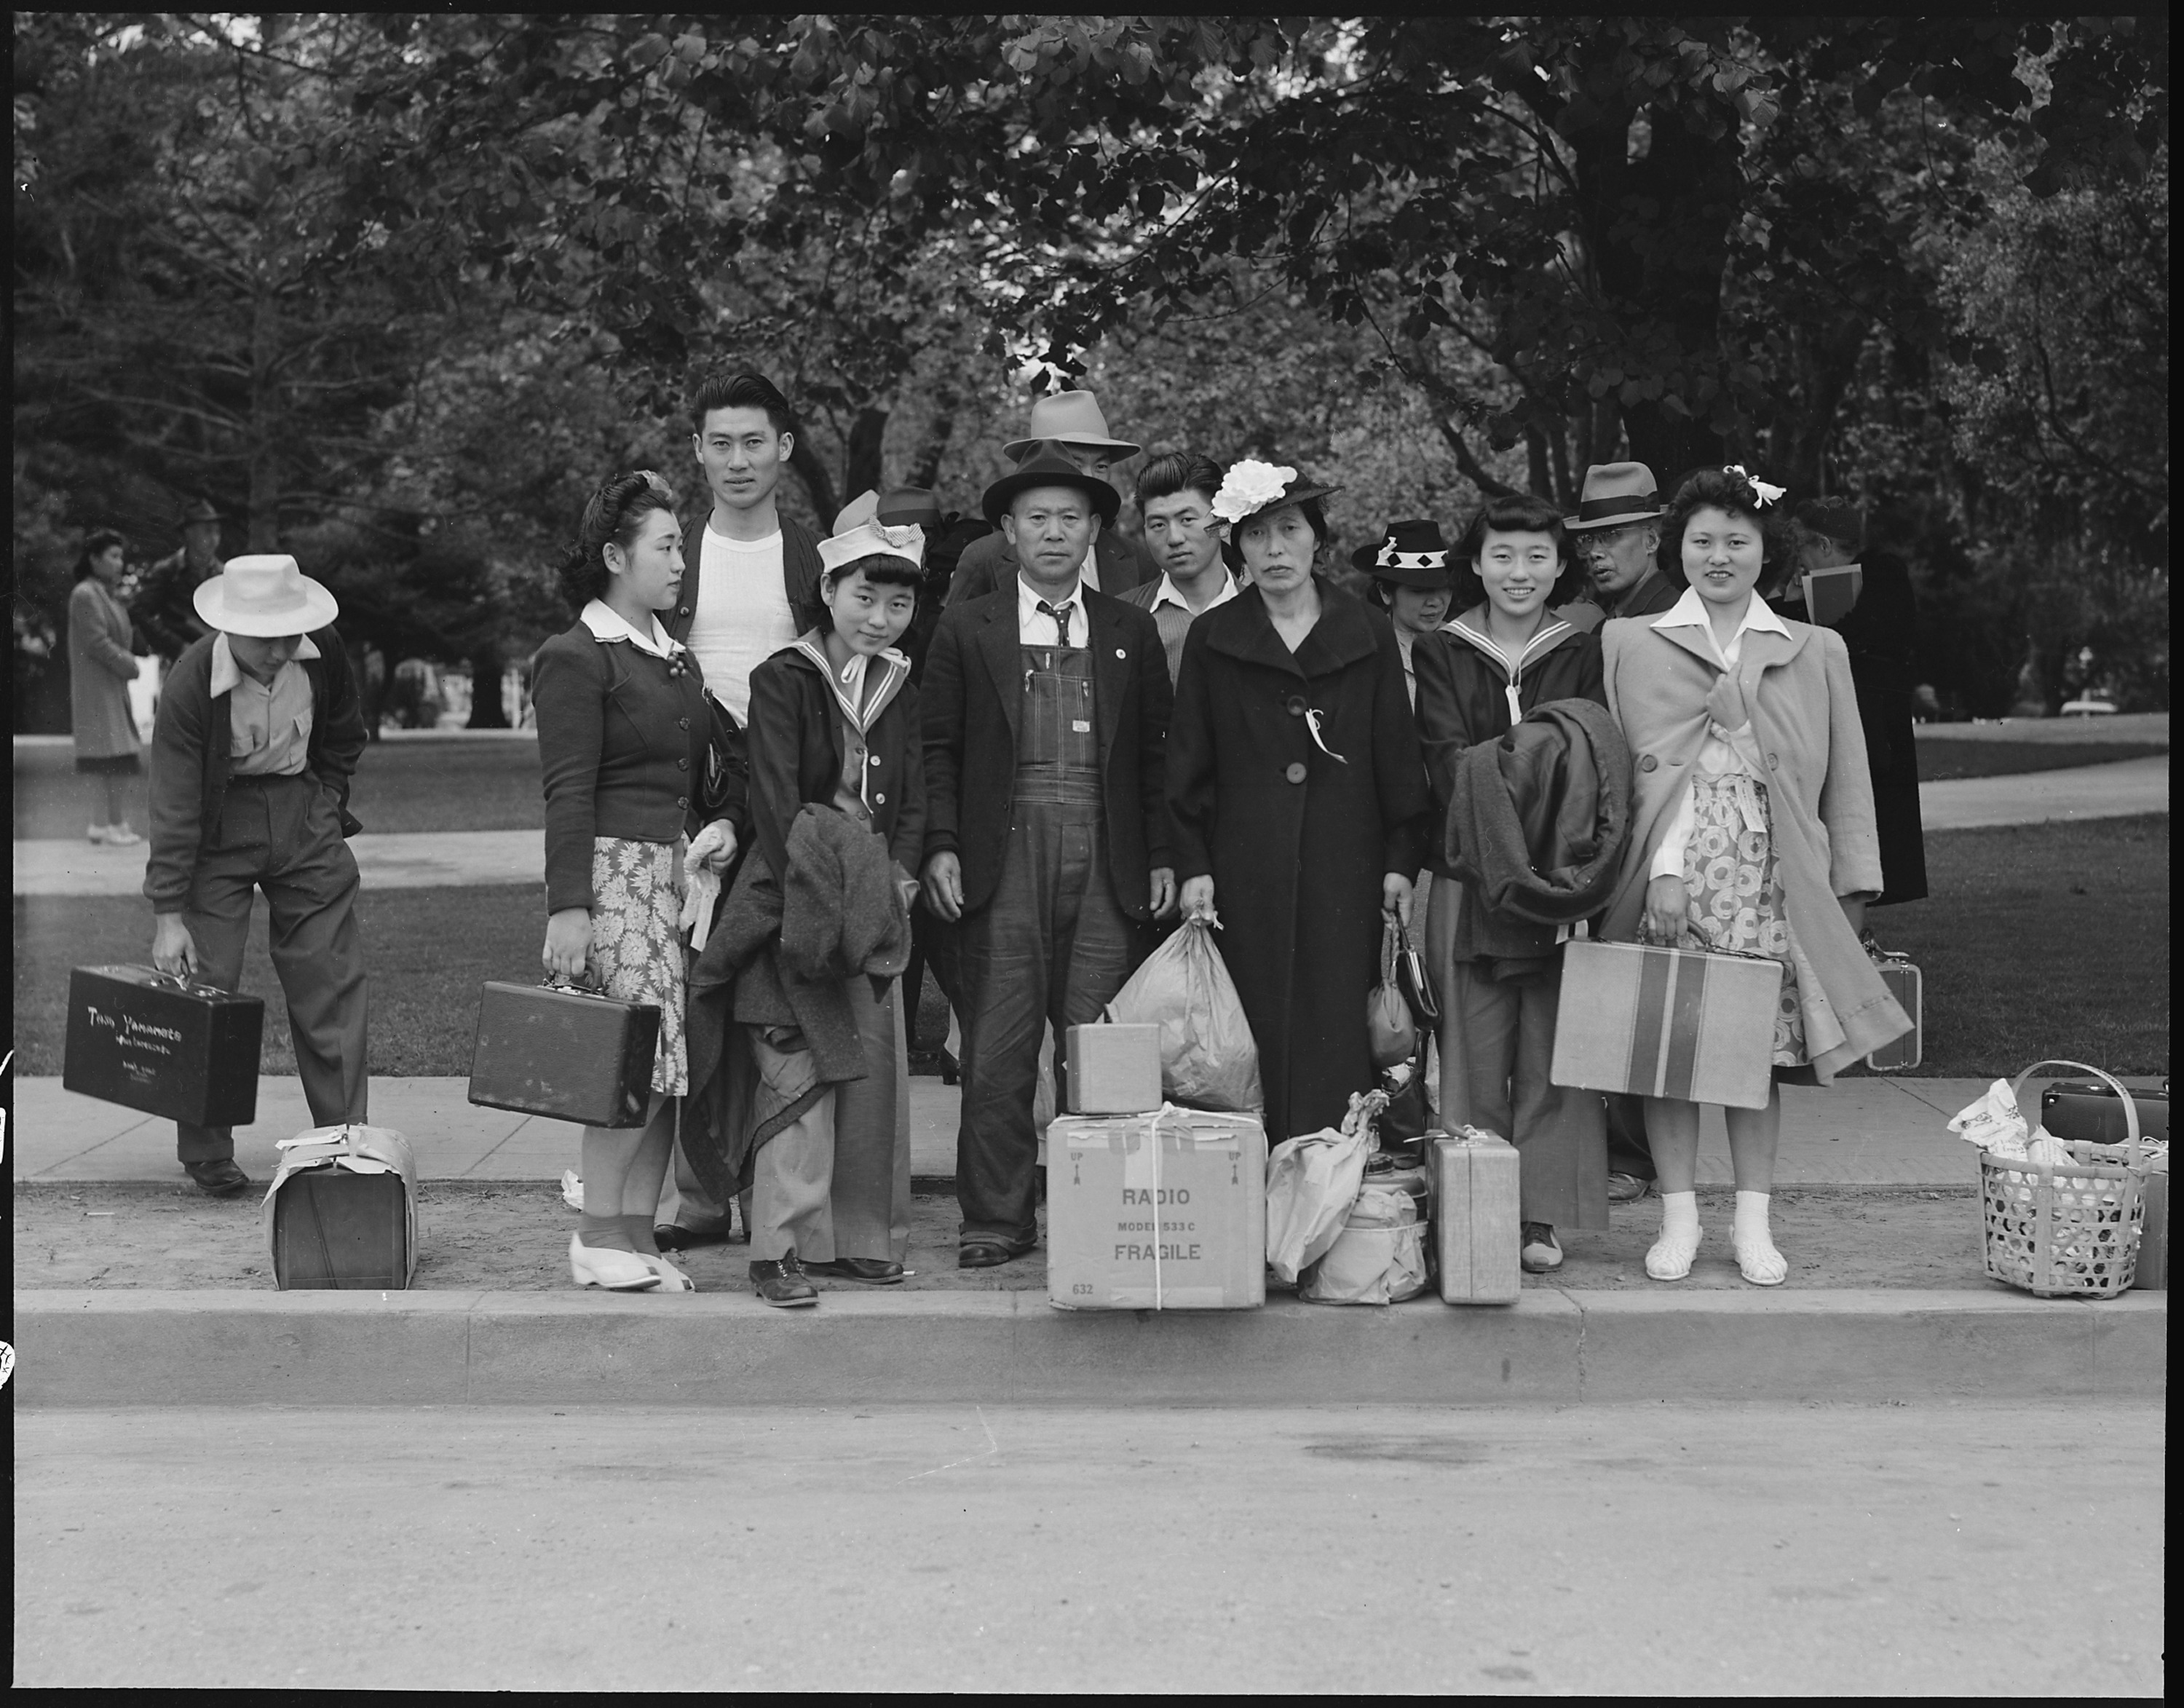 hayward_california-_this_farm_family_await_evacuation_bus-_father_and_mother_immigrated_from_japa_-_-_-_-_nara_-_537508